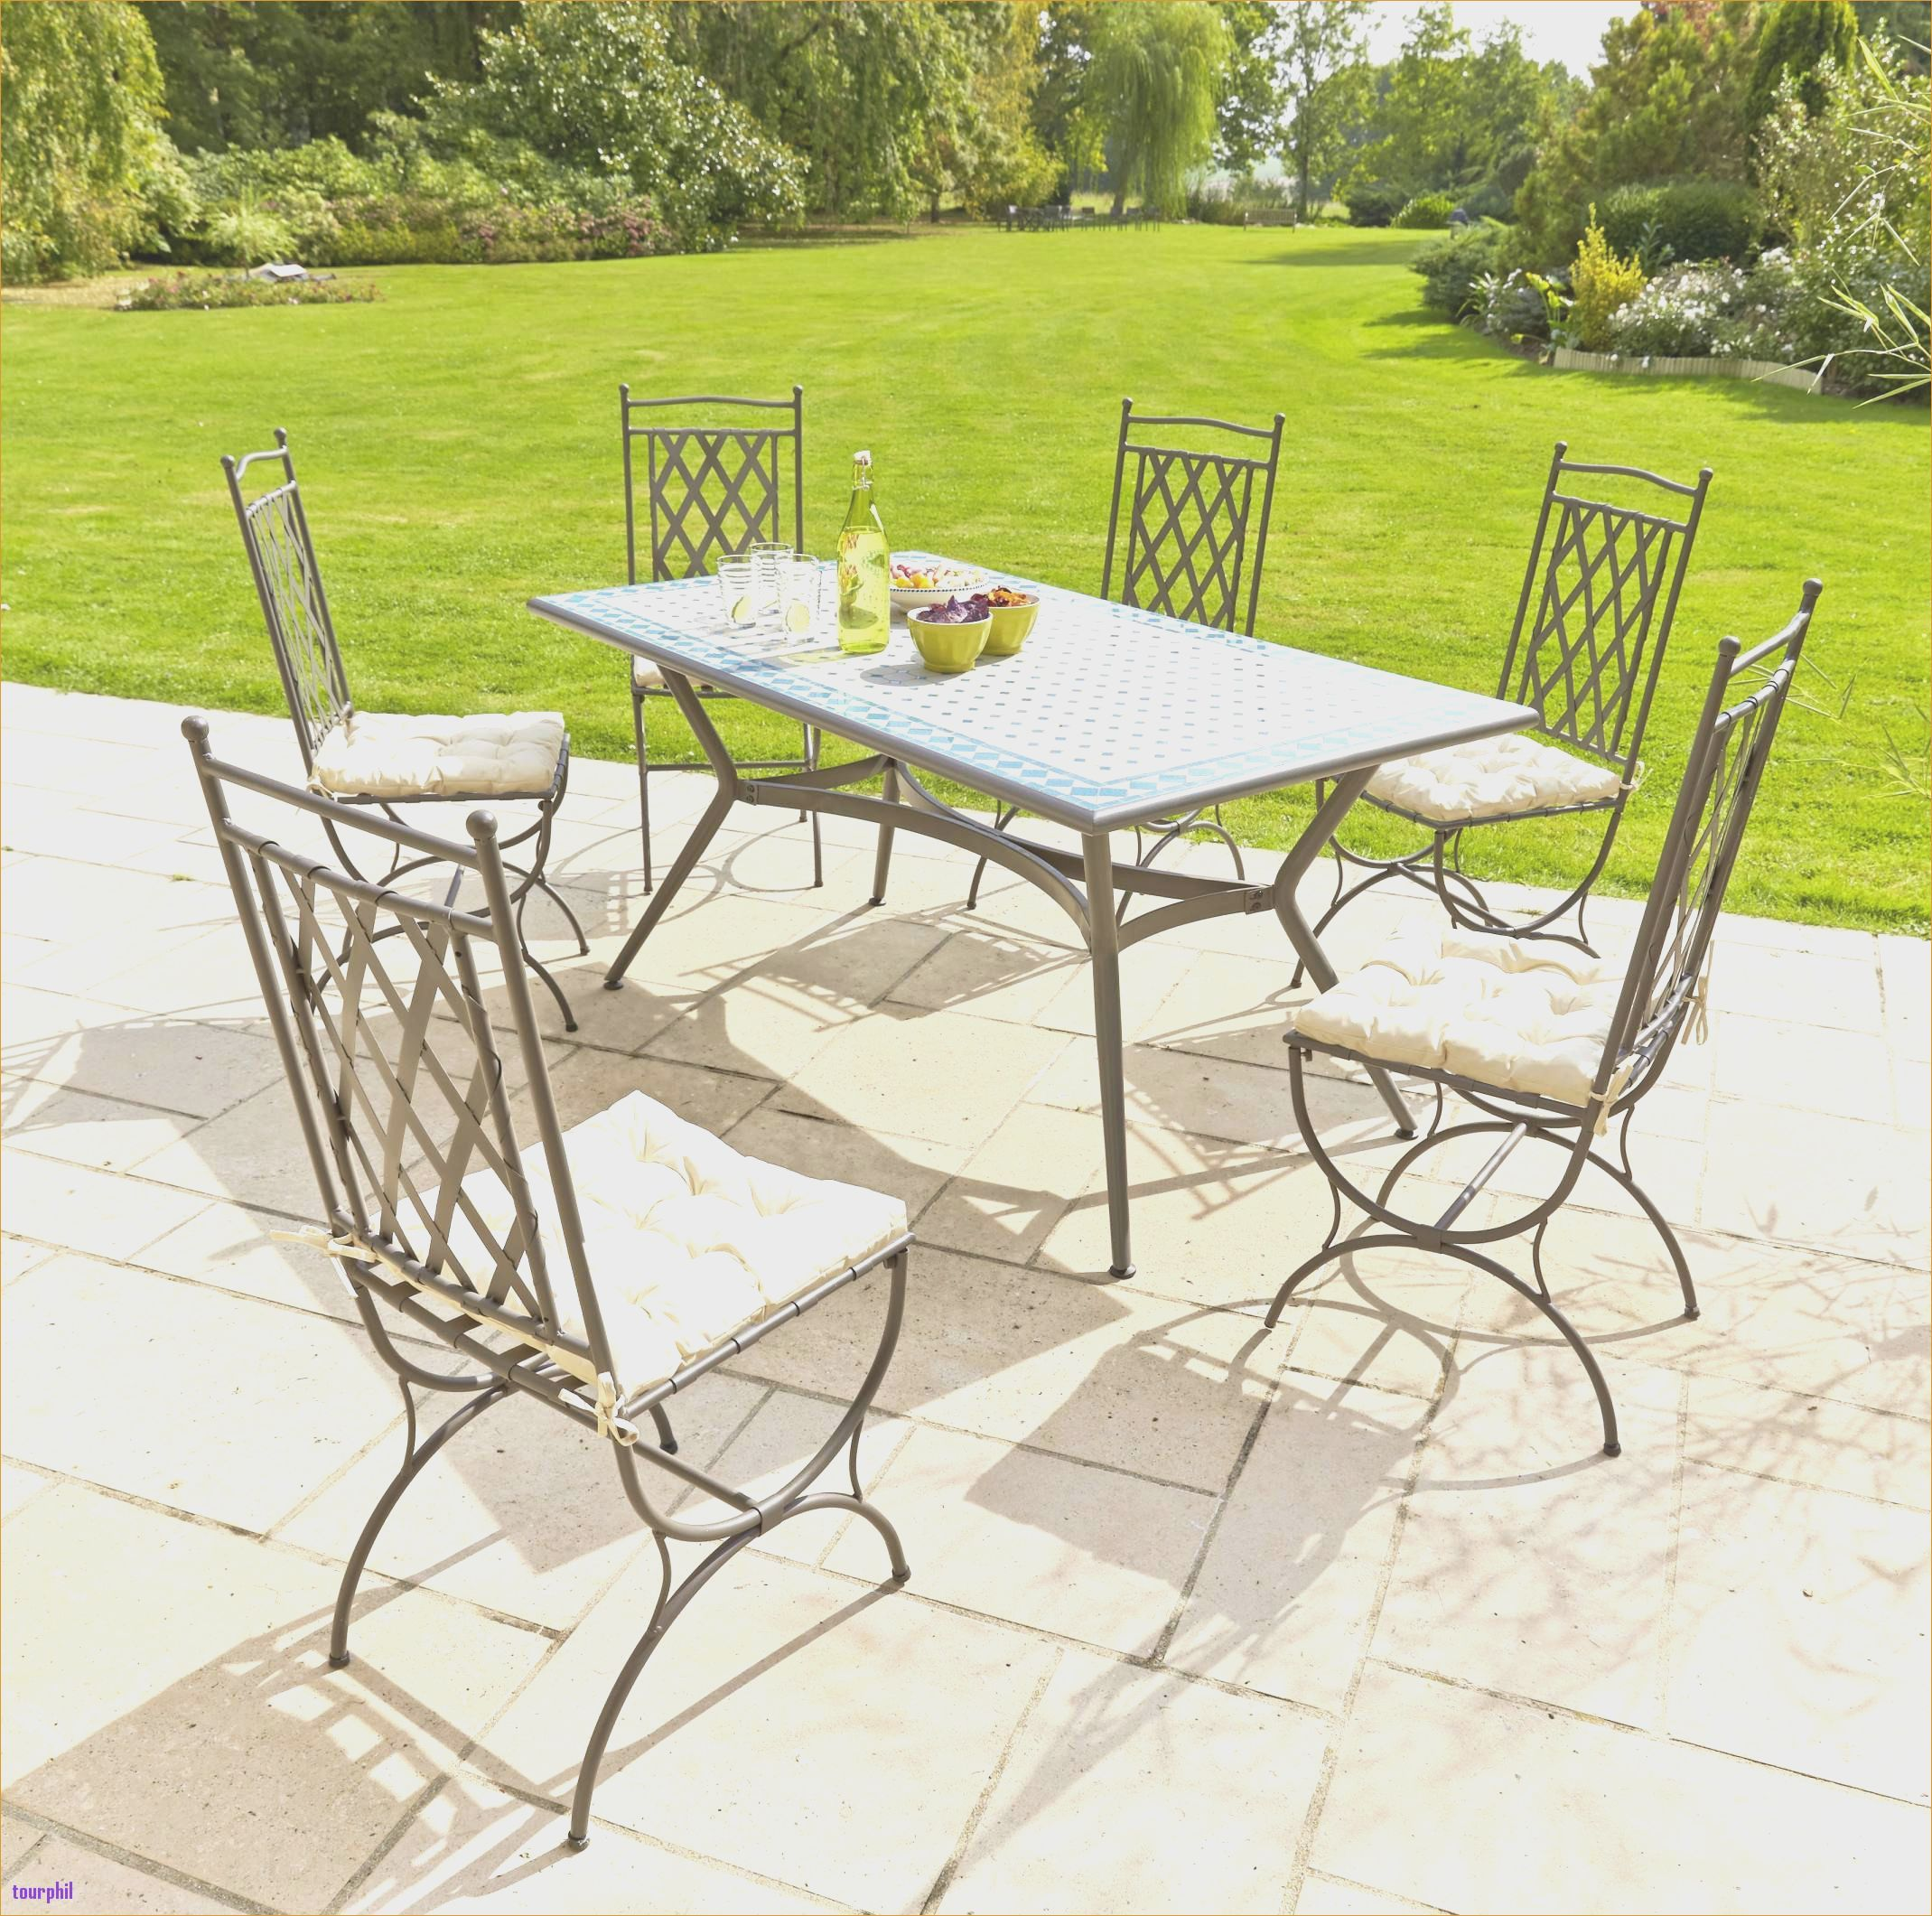 Carrefour Table Et Chaise De Jardin Chaisedeammaassispliablecube Chaisedebar Chaisededouchepliablearoulettes Chaisedegaming Chaisedesal